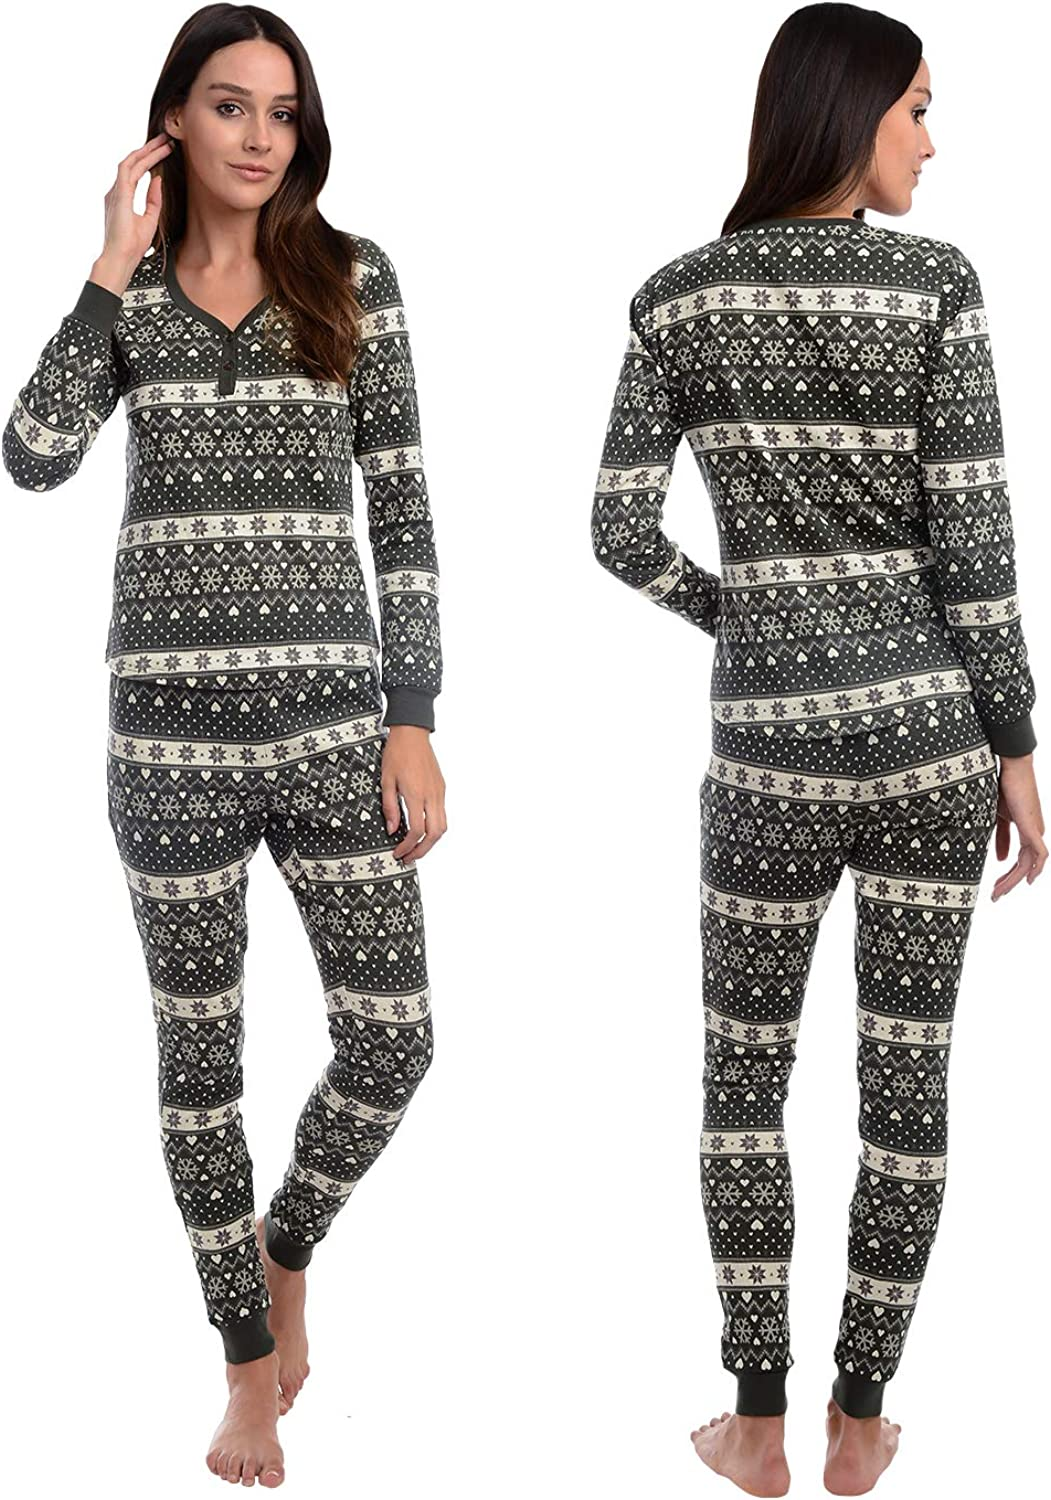 Body Candy Womens Henley Warm Thermal Tops with Leggings set, DEER GAMES, Blue